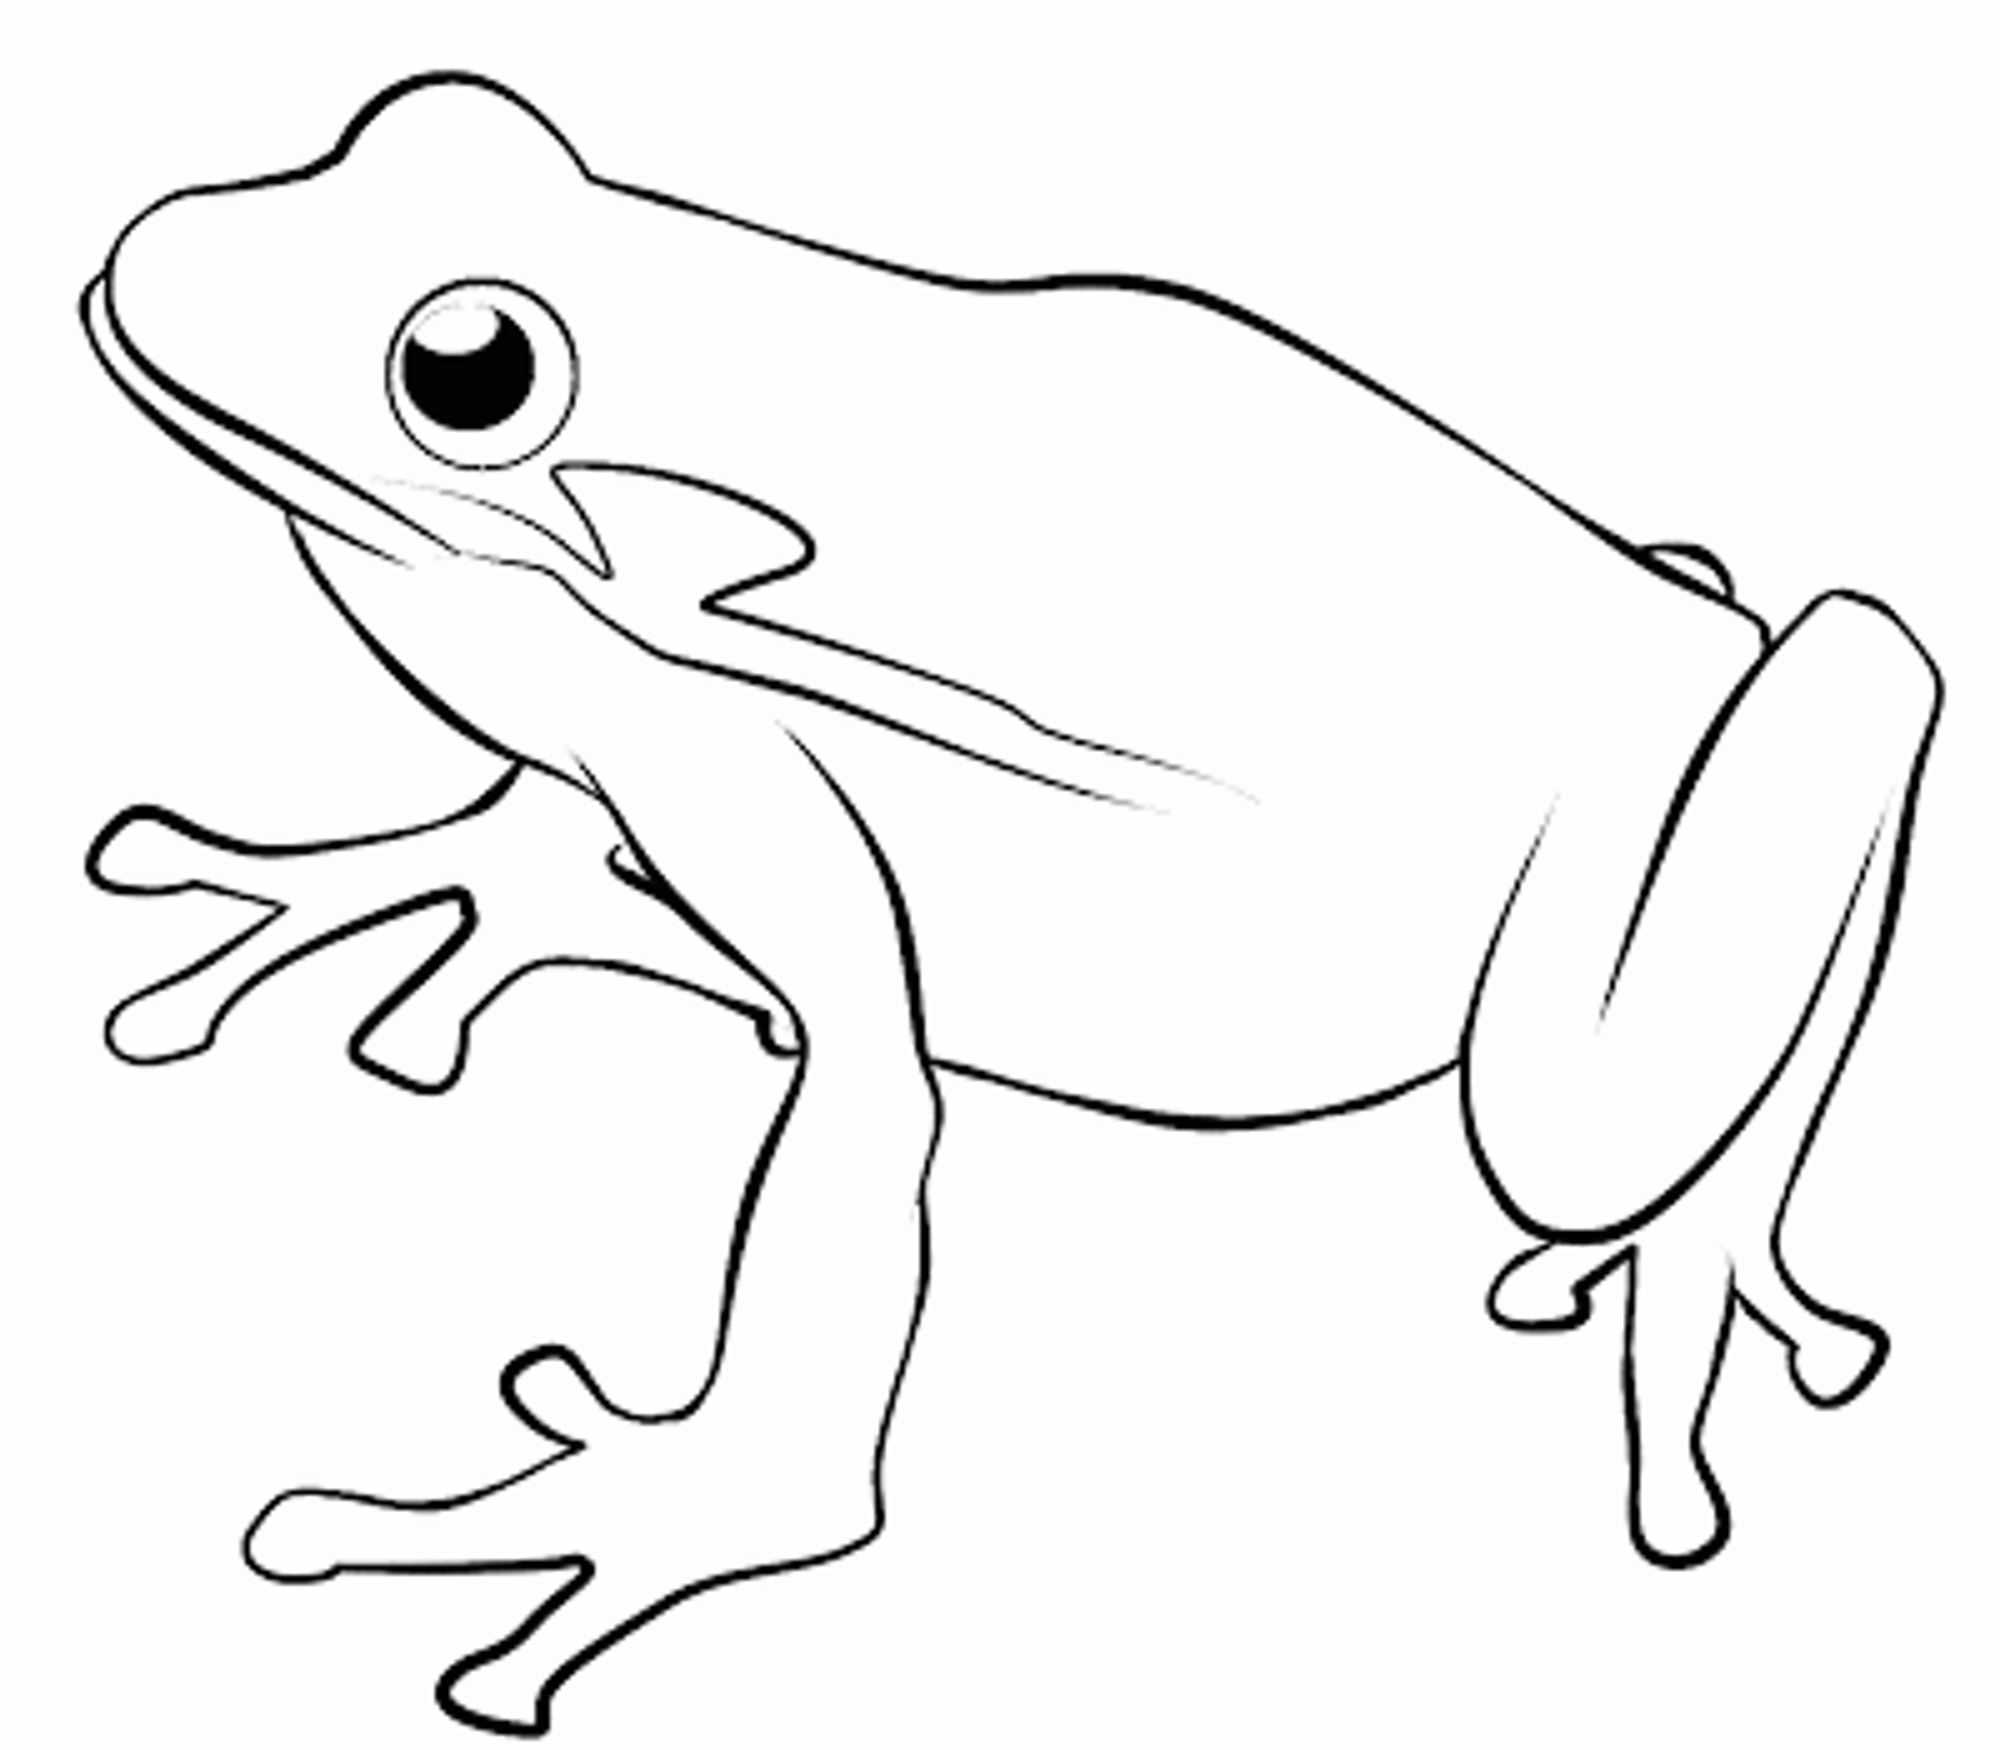 2000x1750 Coloring Pages Luxury Frog Drawing For Kids Incredible Coloring